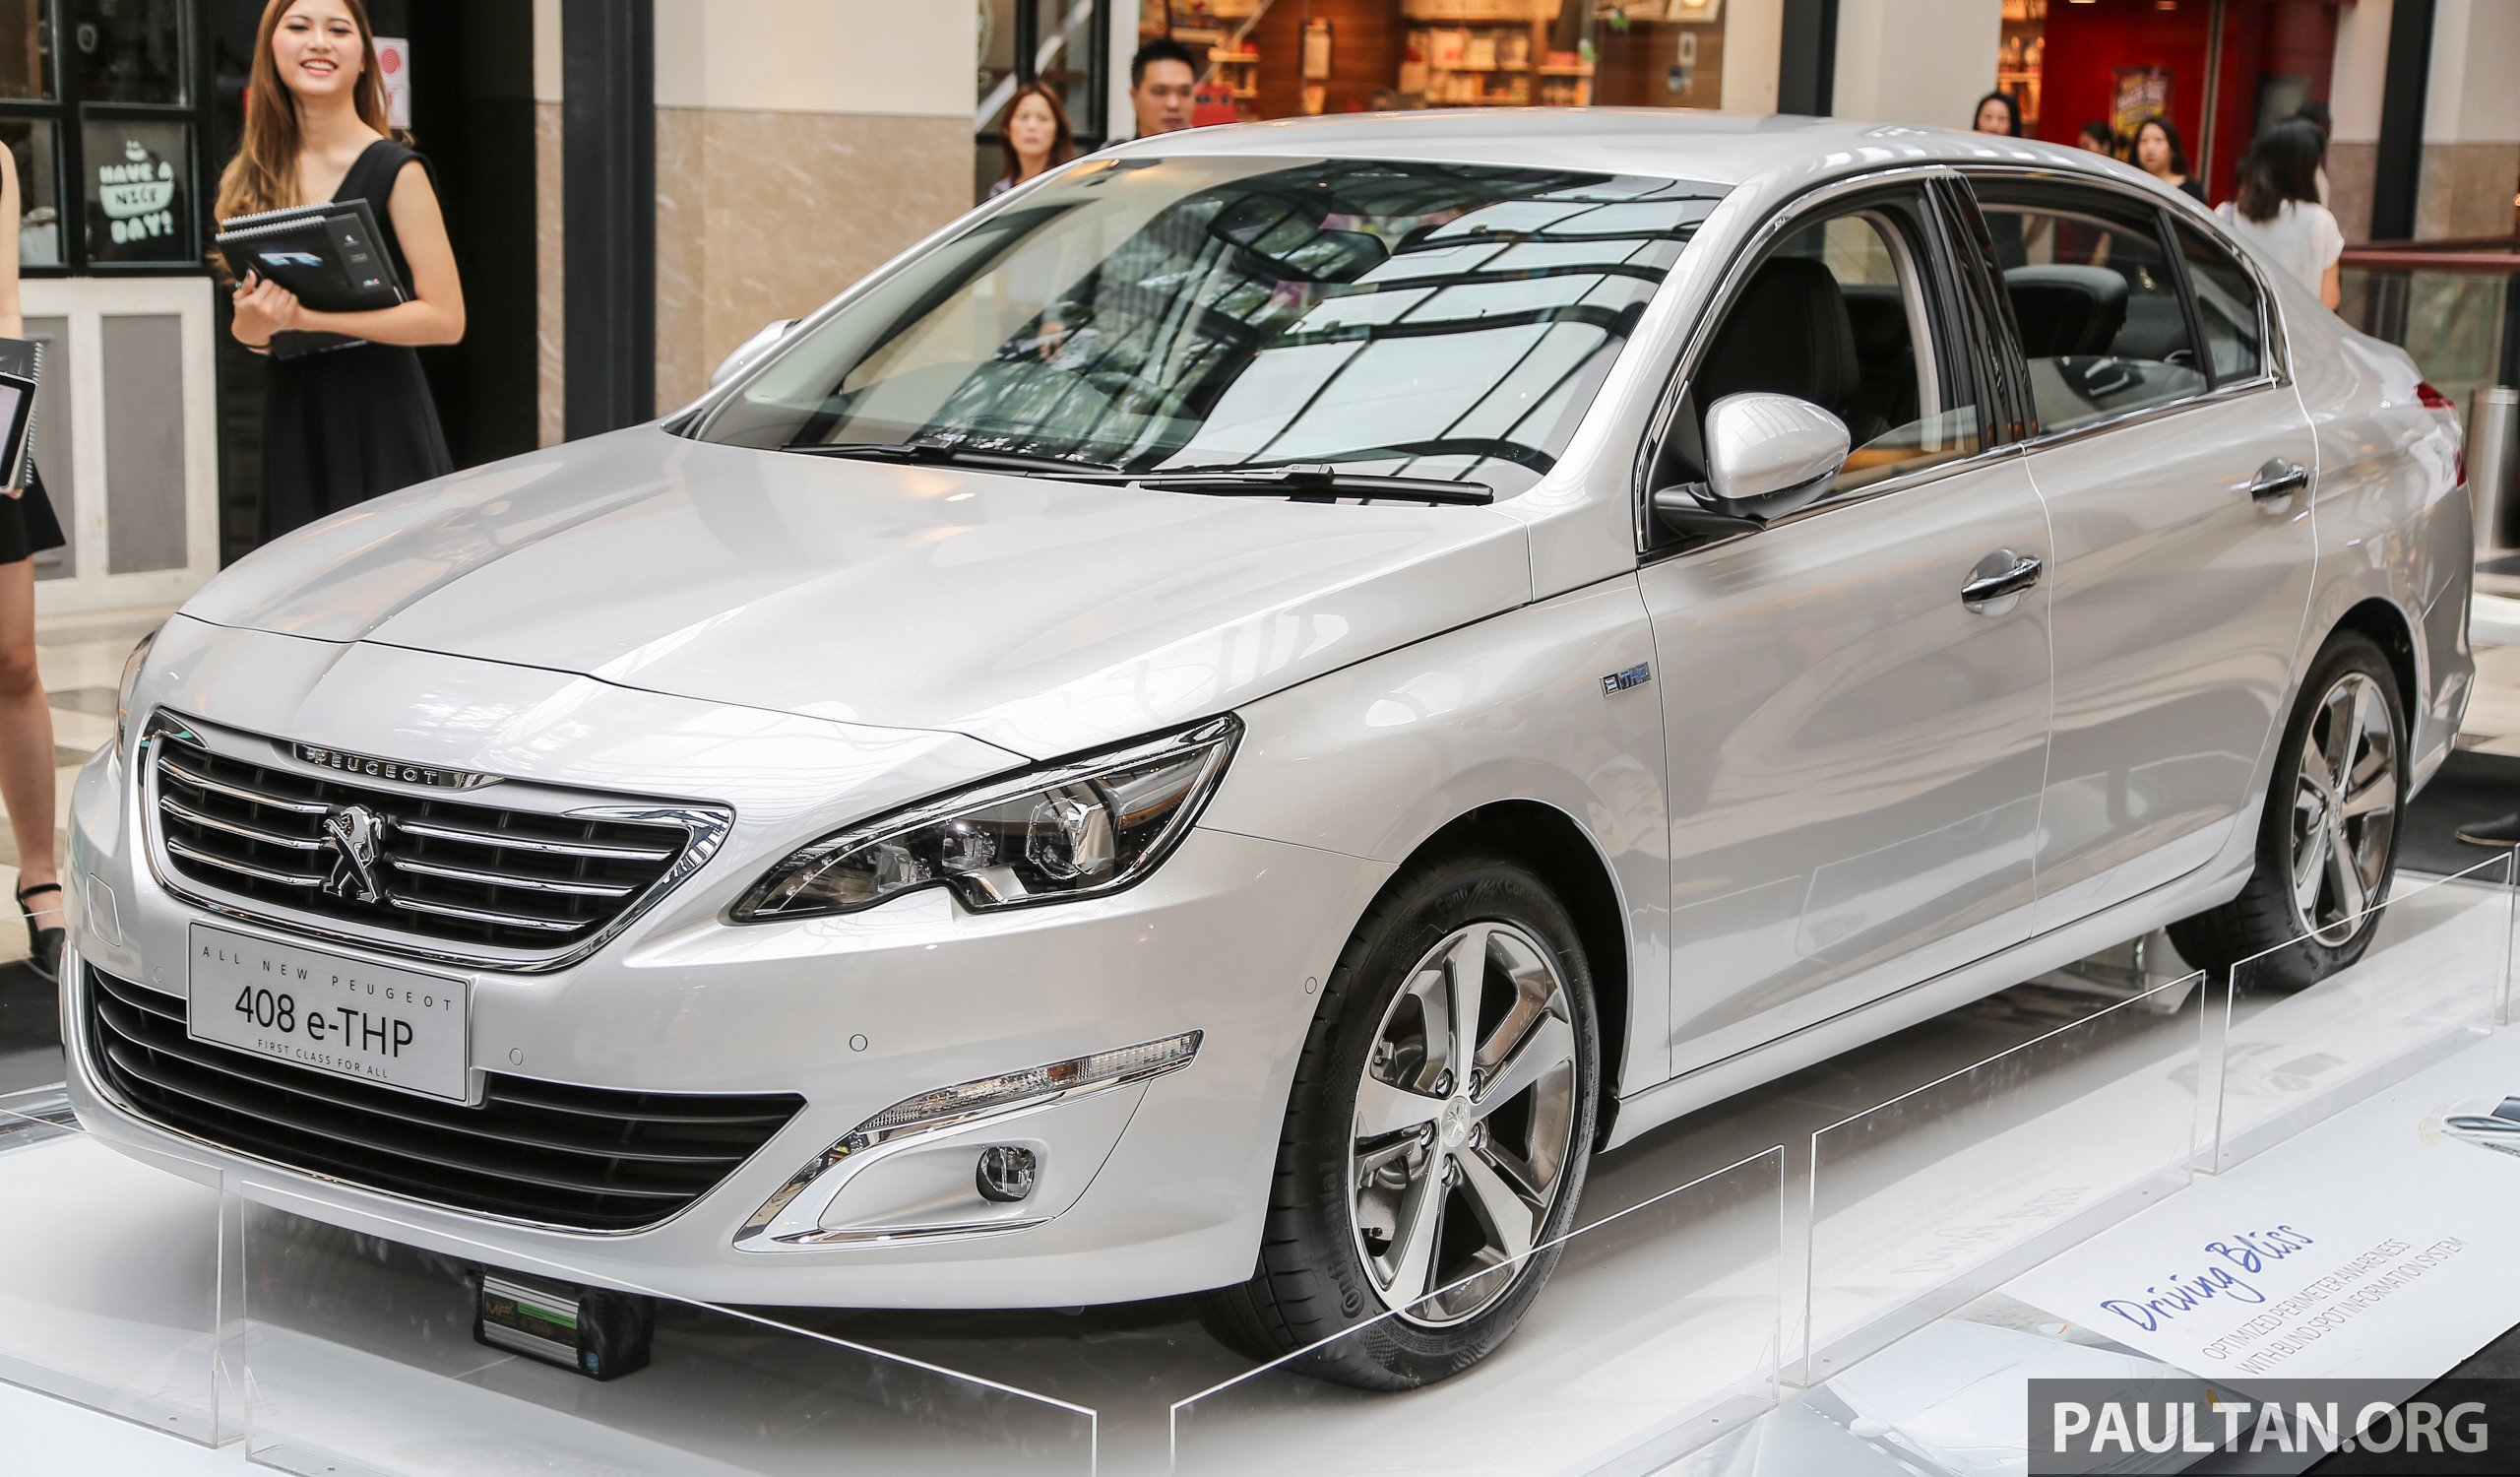 New Peugeot 408 E-THP Previewed, Open For Booking